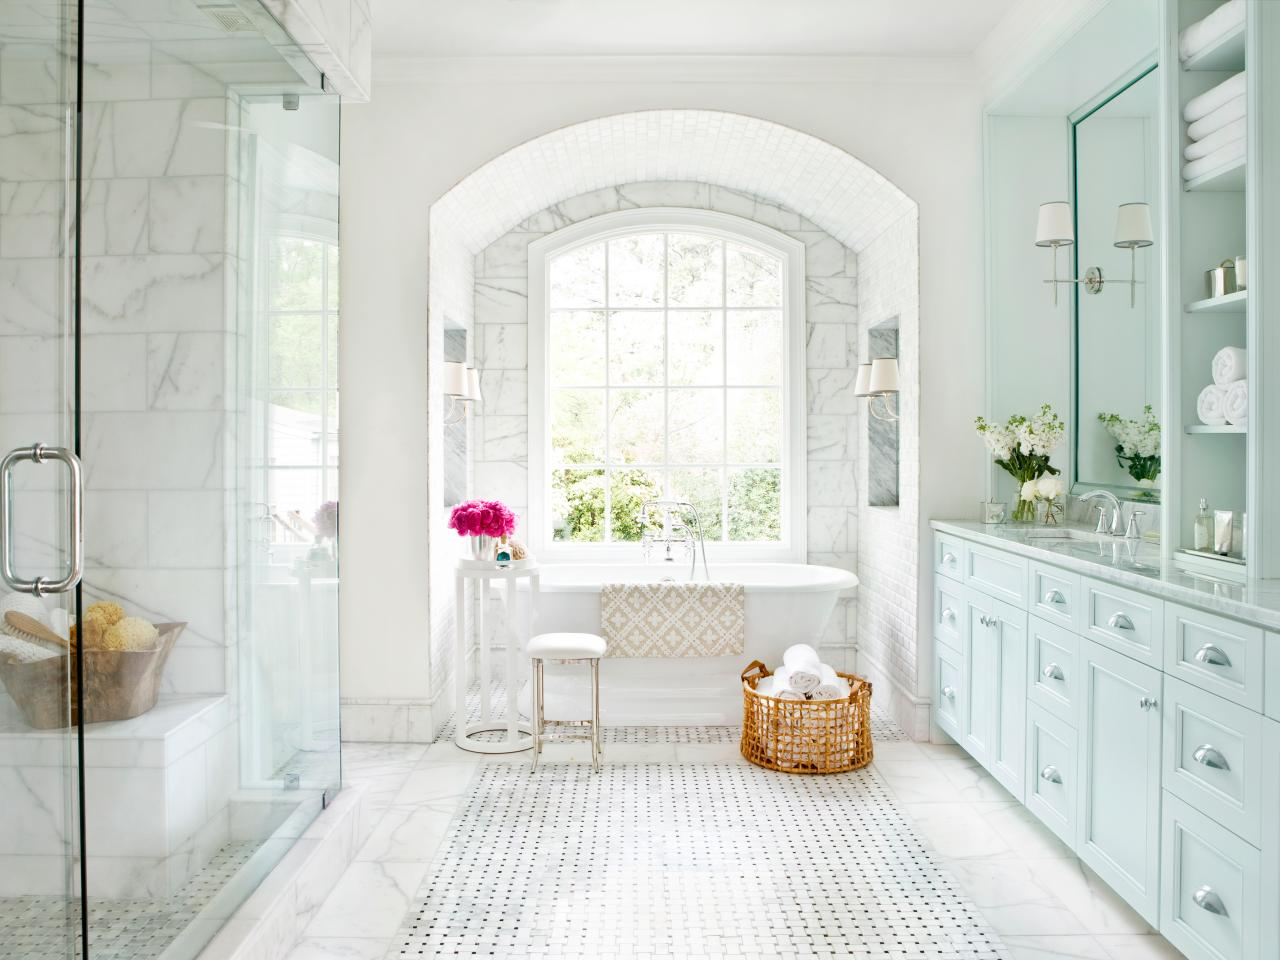 Marble Bathrooms We're Swooning Over | HGTV's Decorating ...